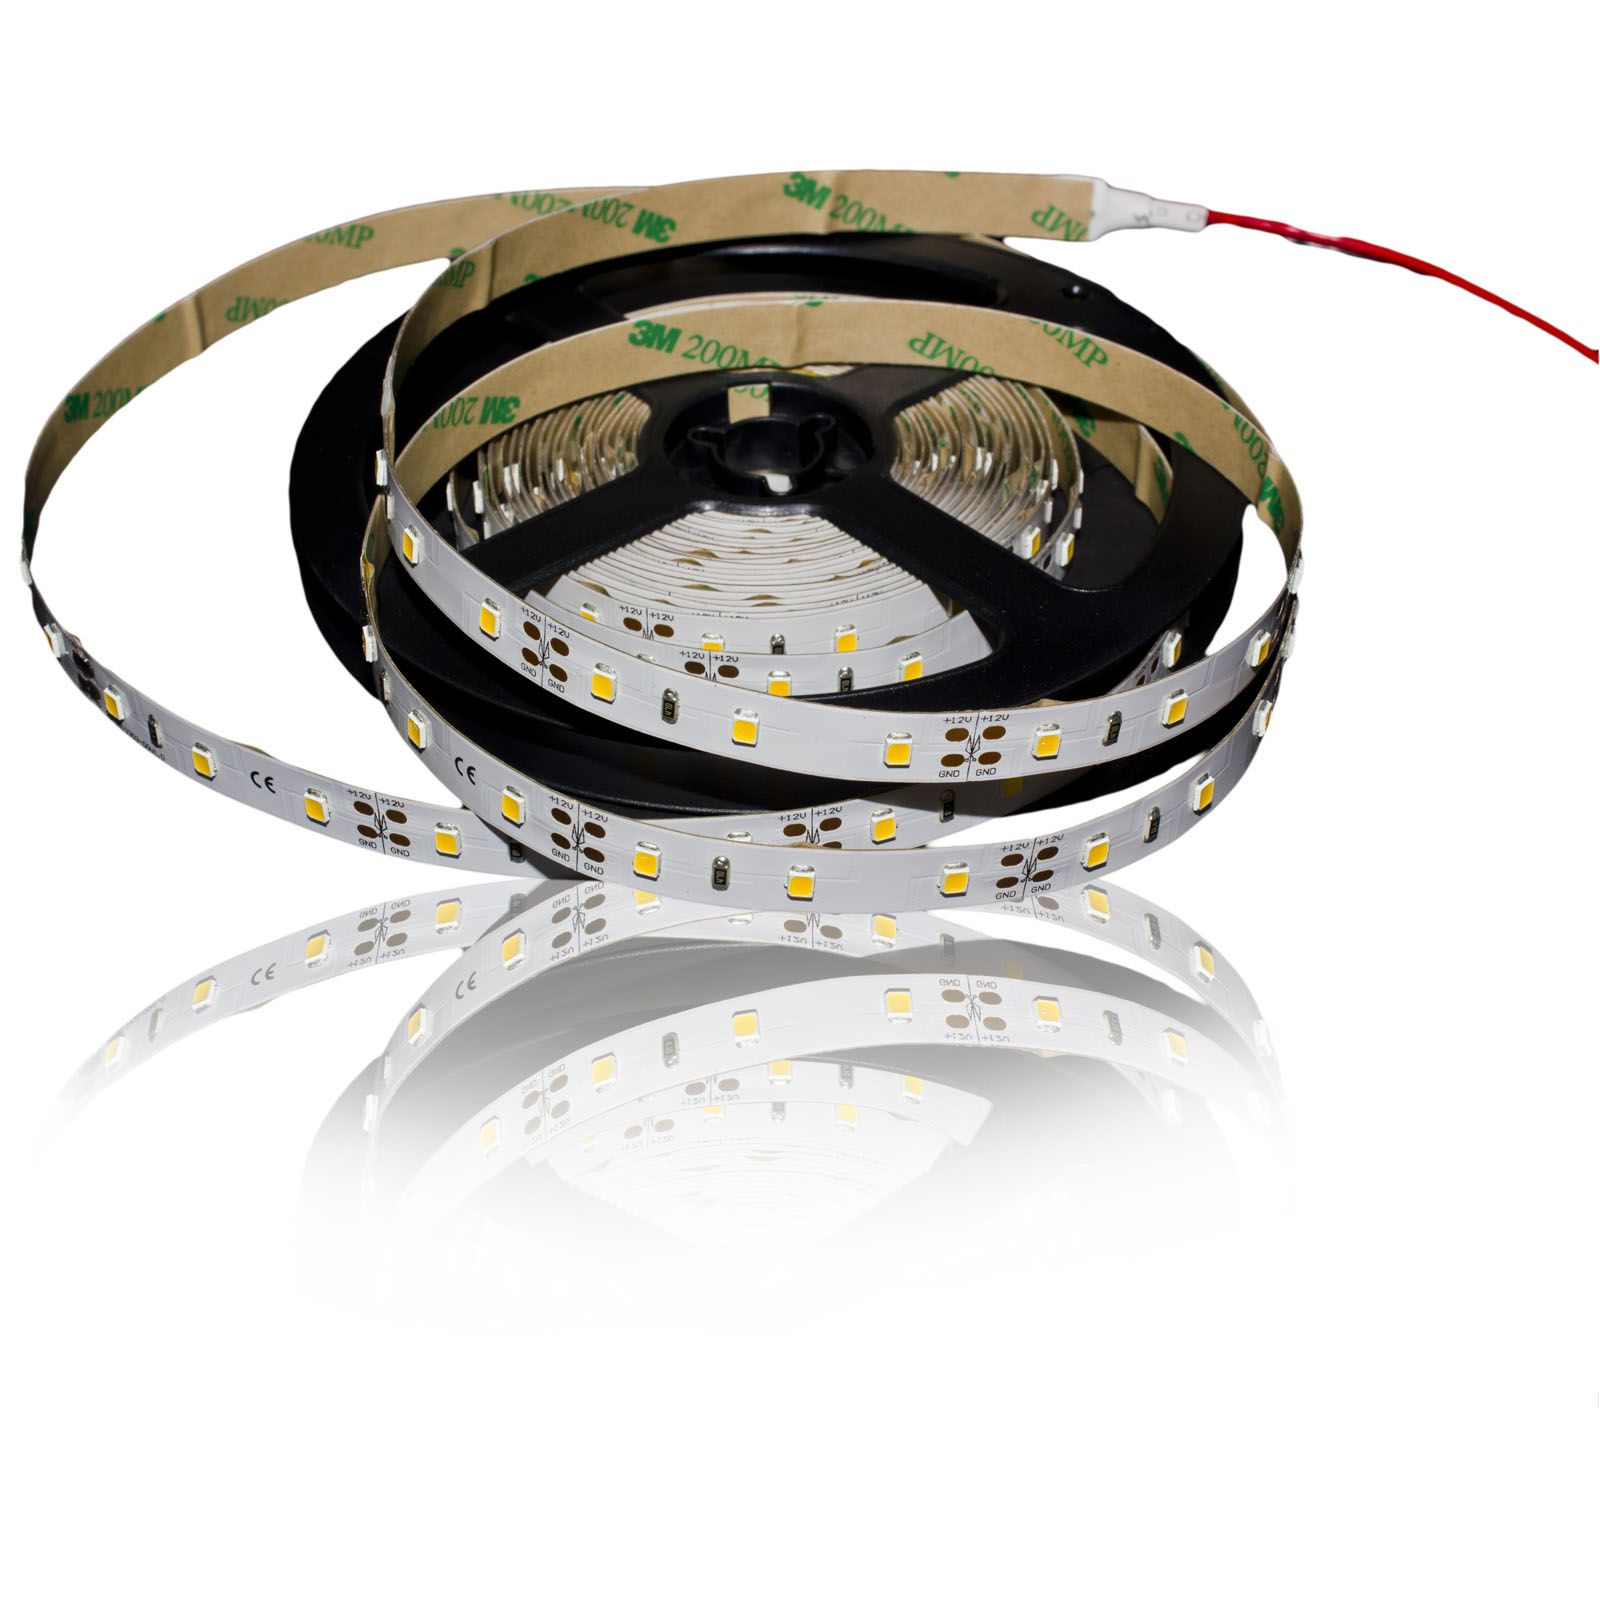 sehr helles LED Lichtband 72W